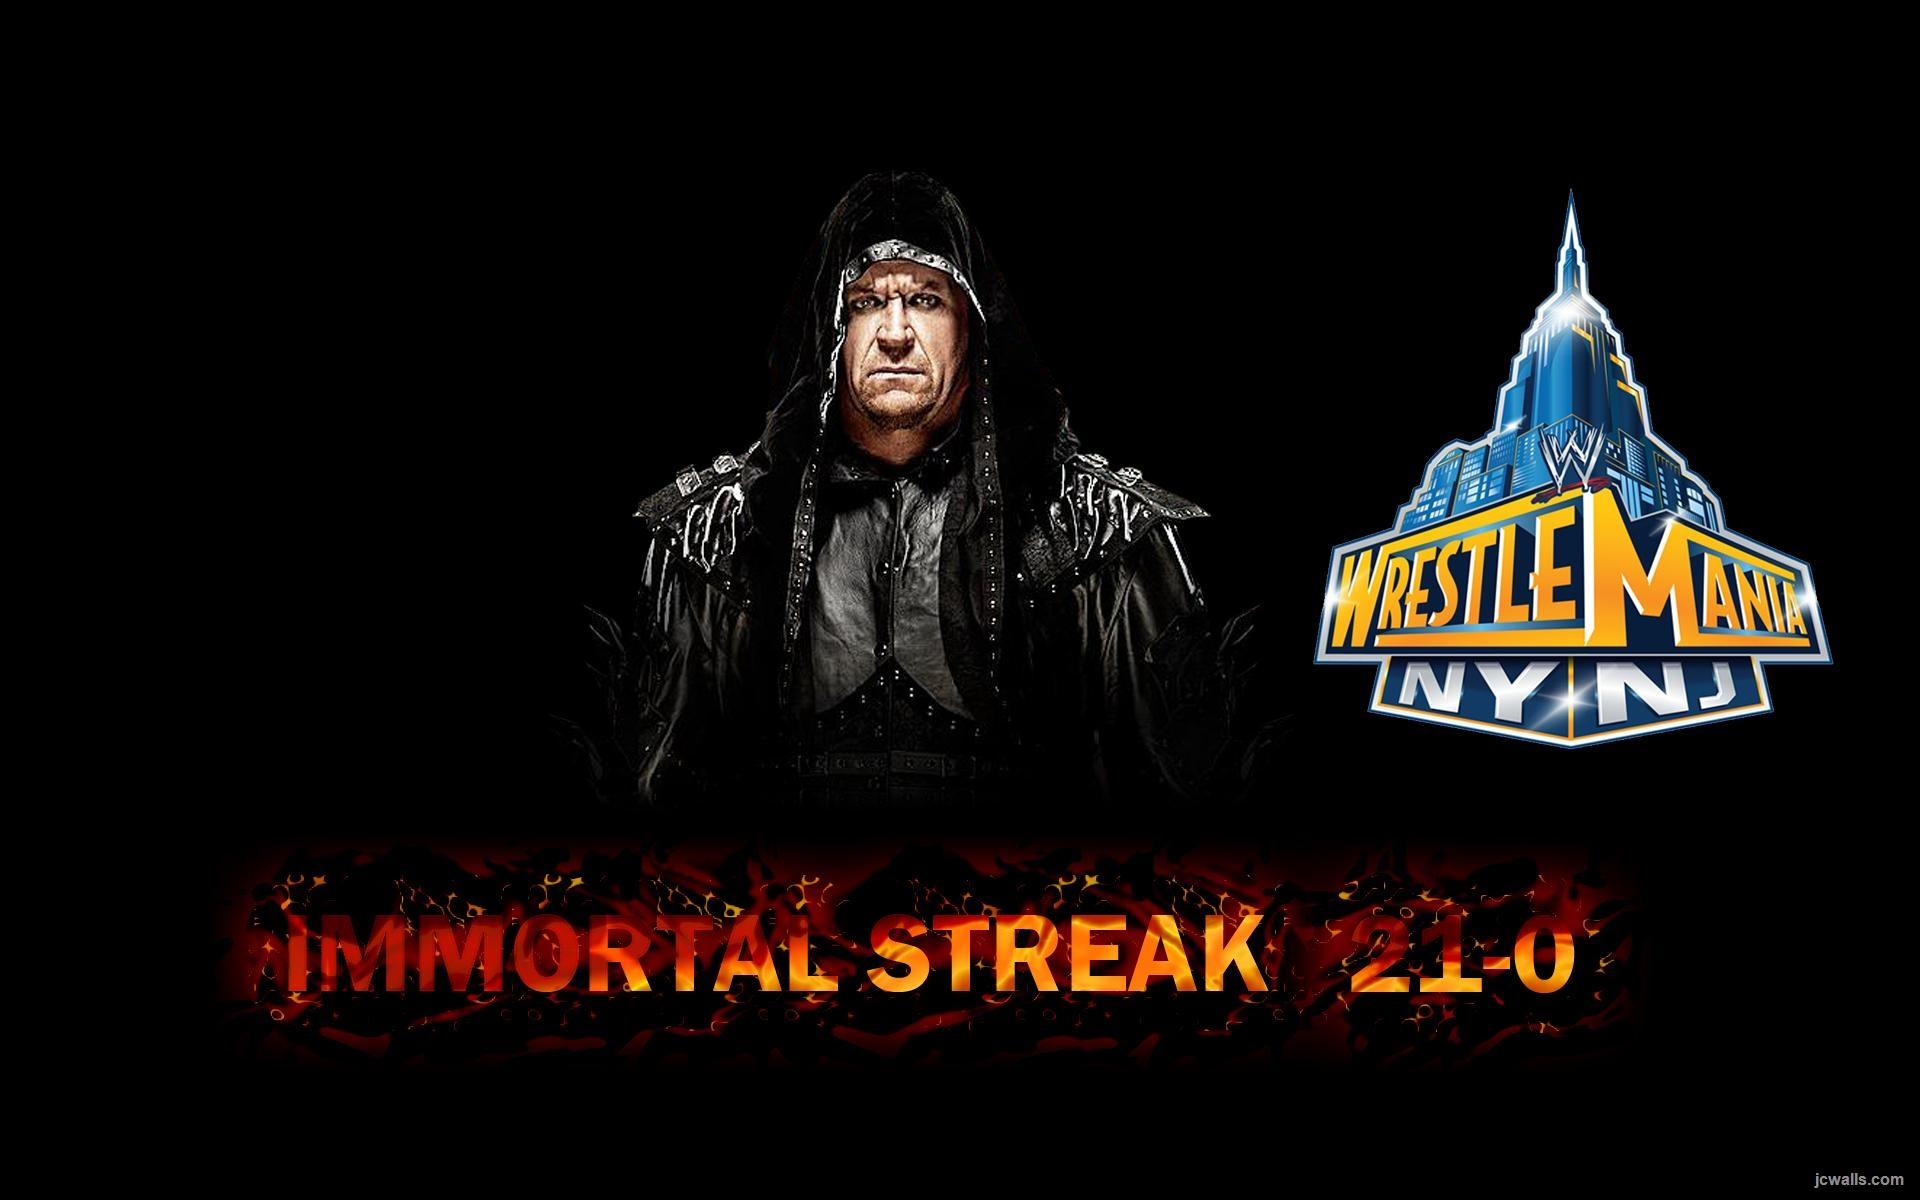 wwe undertaker immortal champion free wallpaper